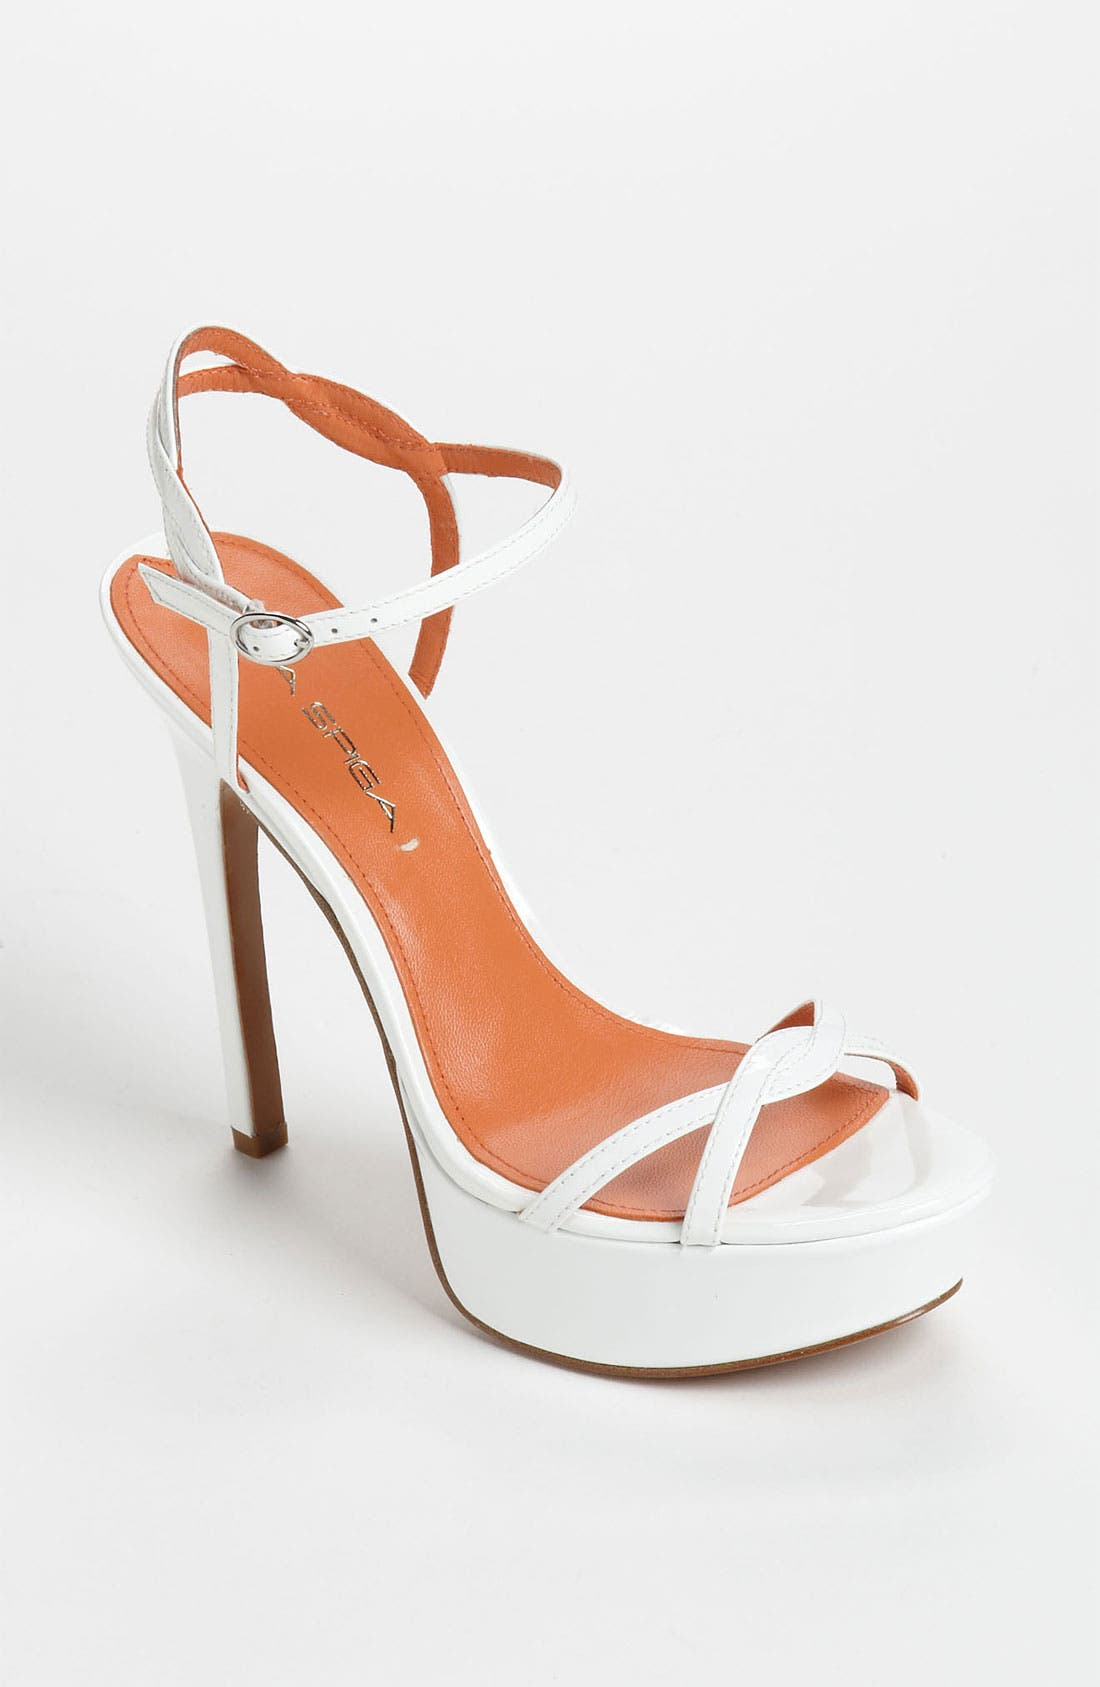 Main Image - Via Spiga 'Heavenly' Sandal